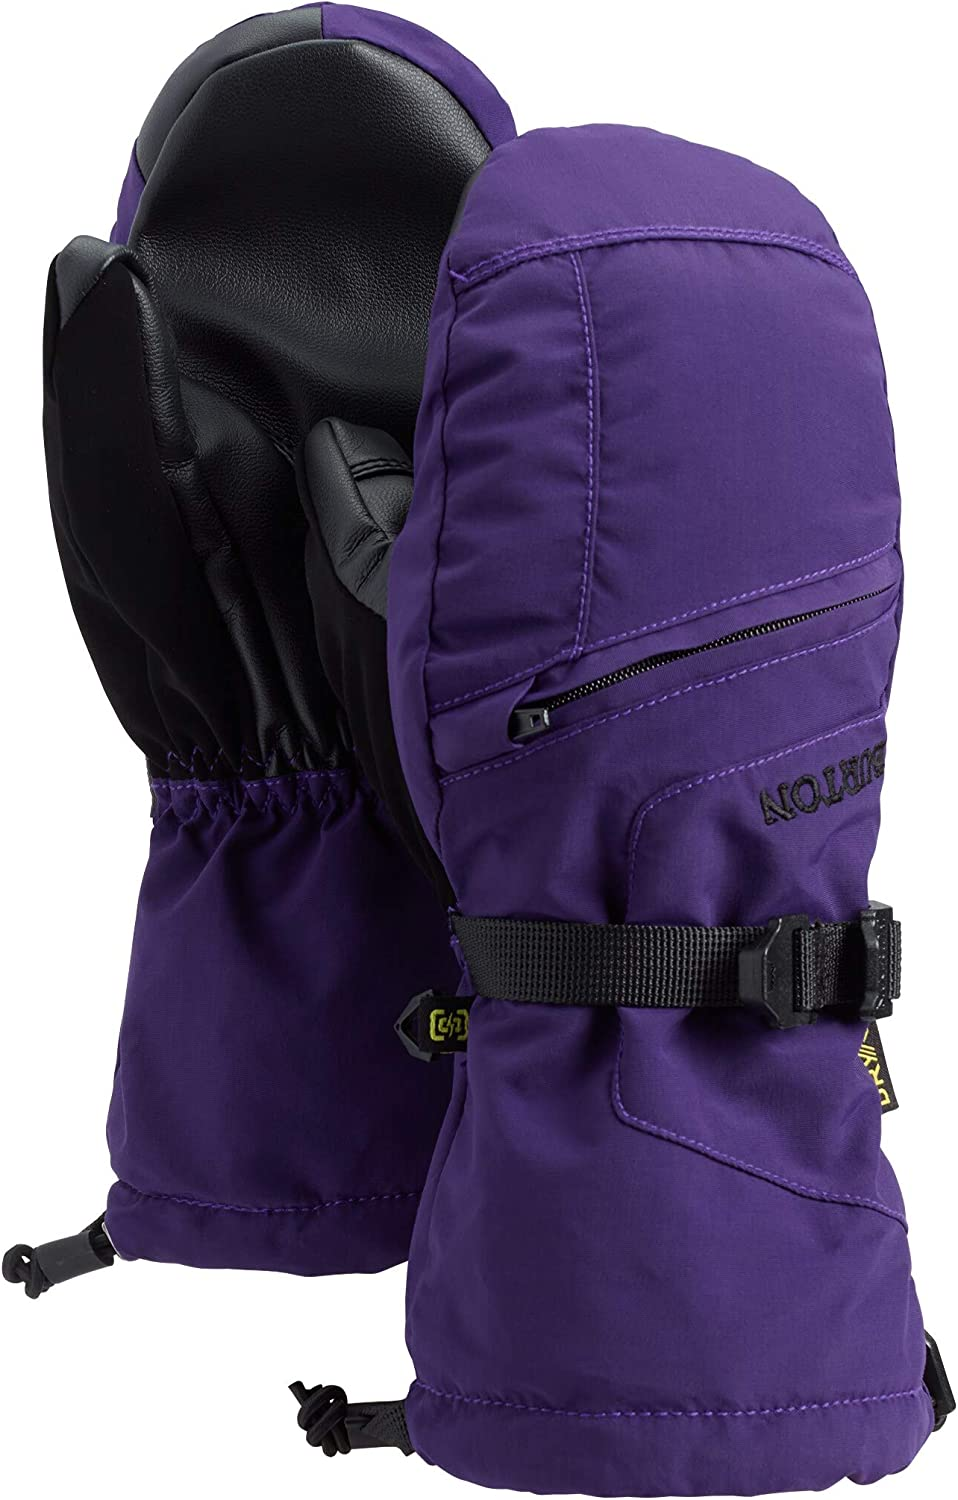 Burton Youth Vent Mittens Kids : Sports & Outdoors